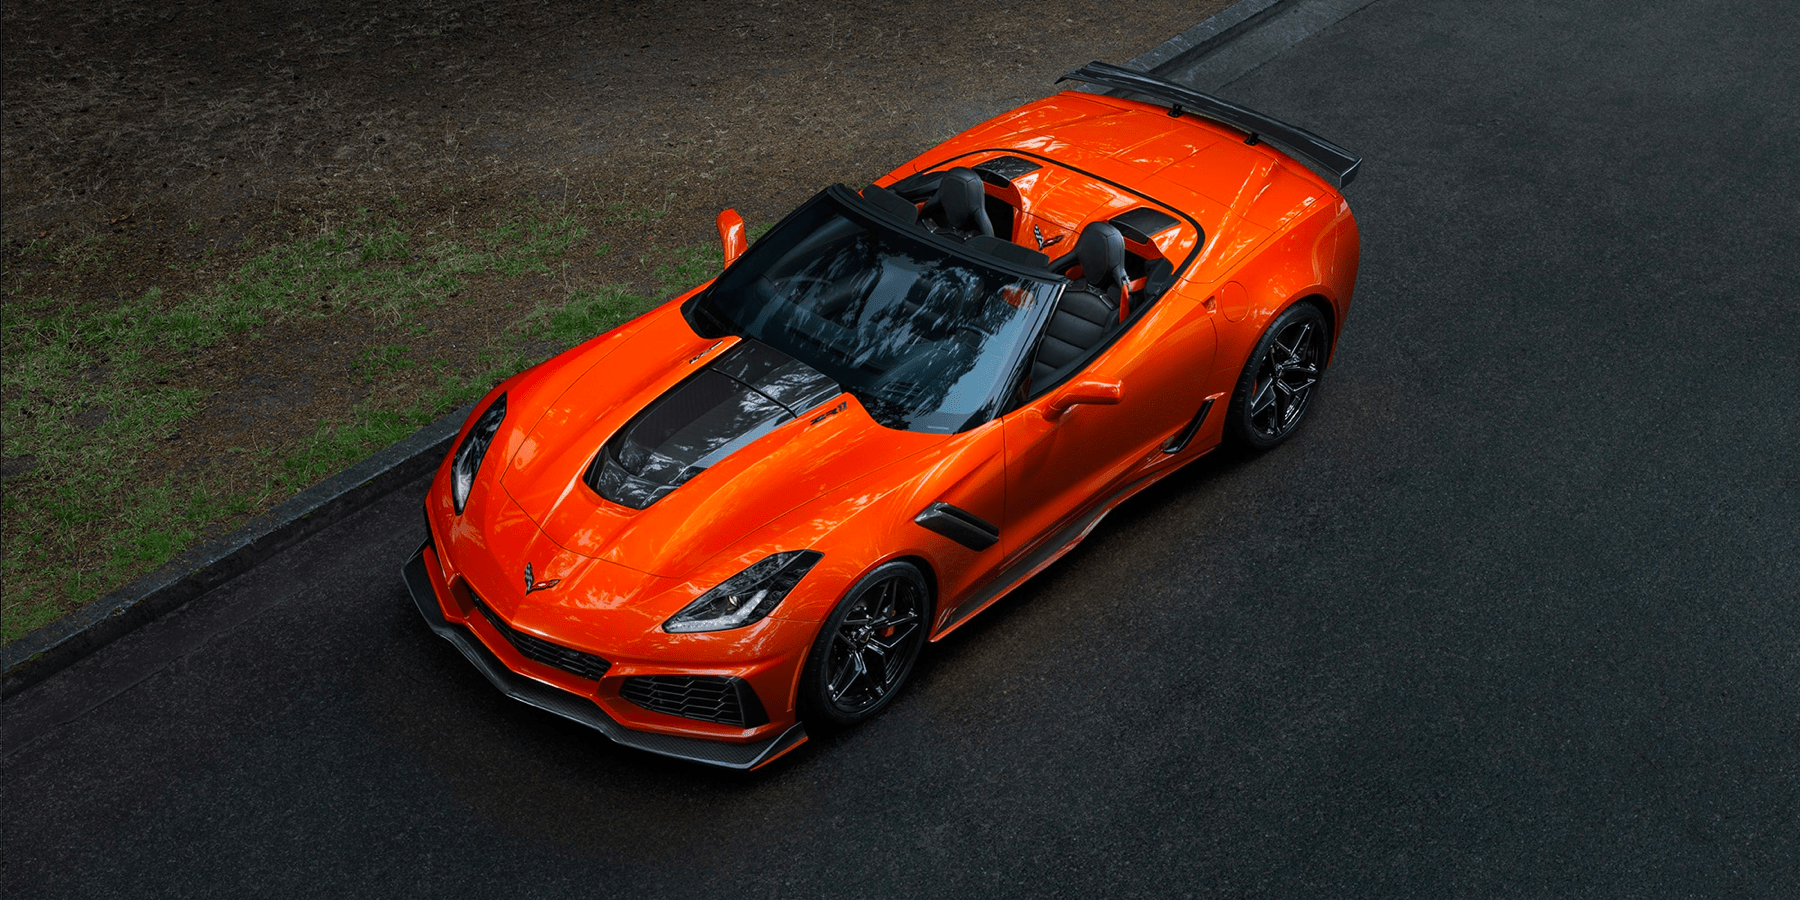 irds eye view looking down on orange Corvette ZR1